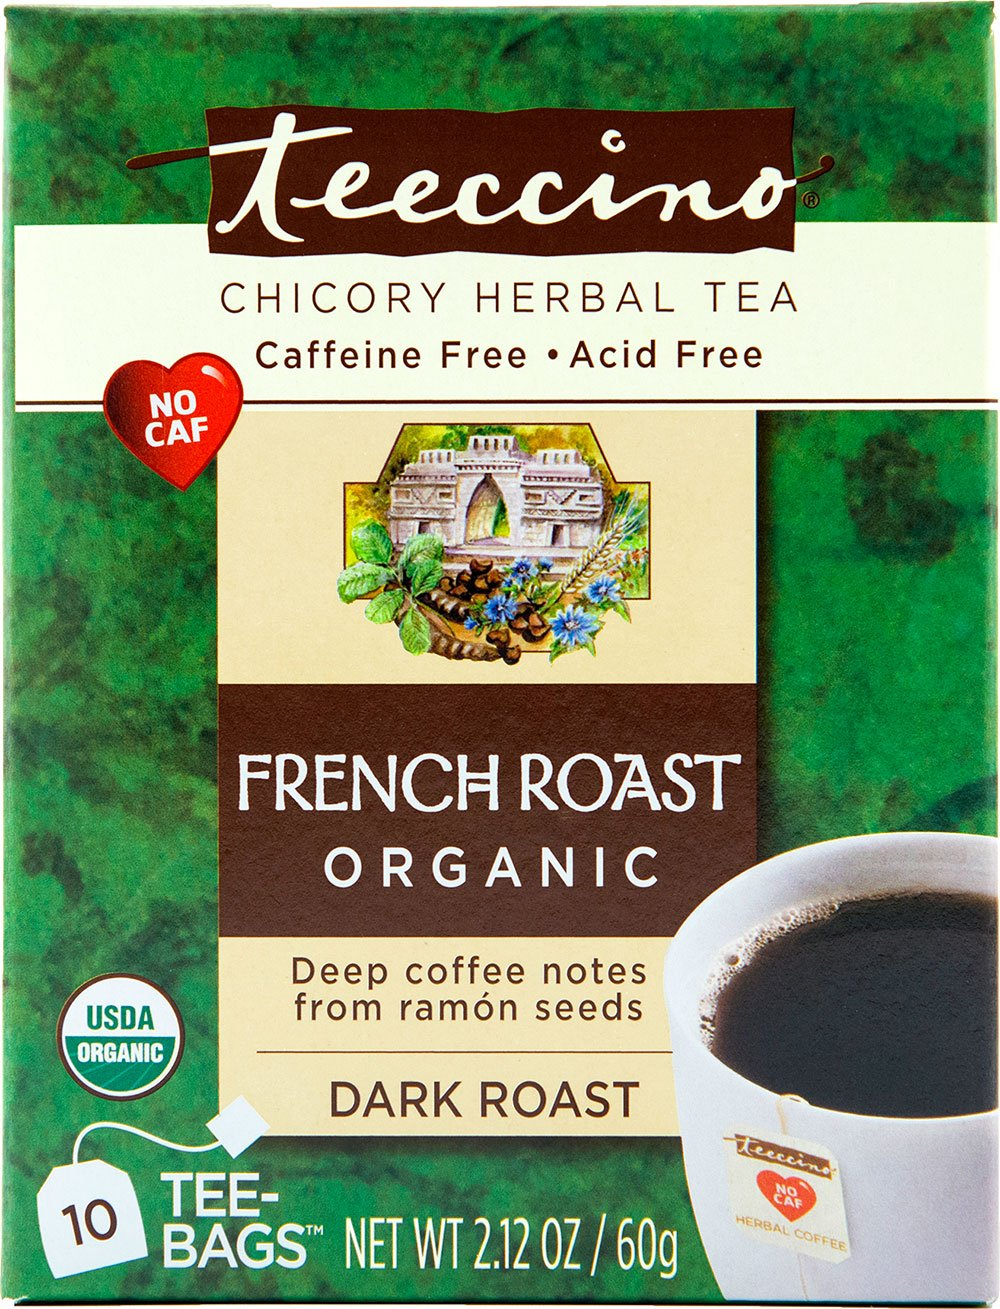 Teeccino French Roast Organic Chicory Herbal Tea Bags, Caffeine Free, Acid Free, 10 Count